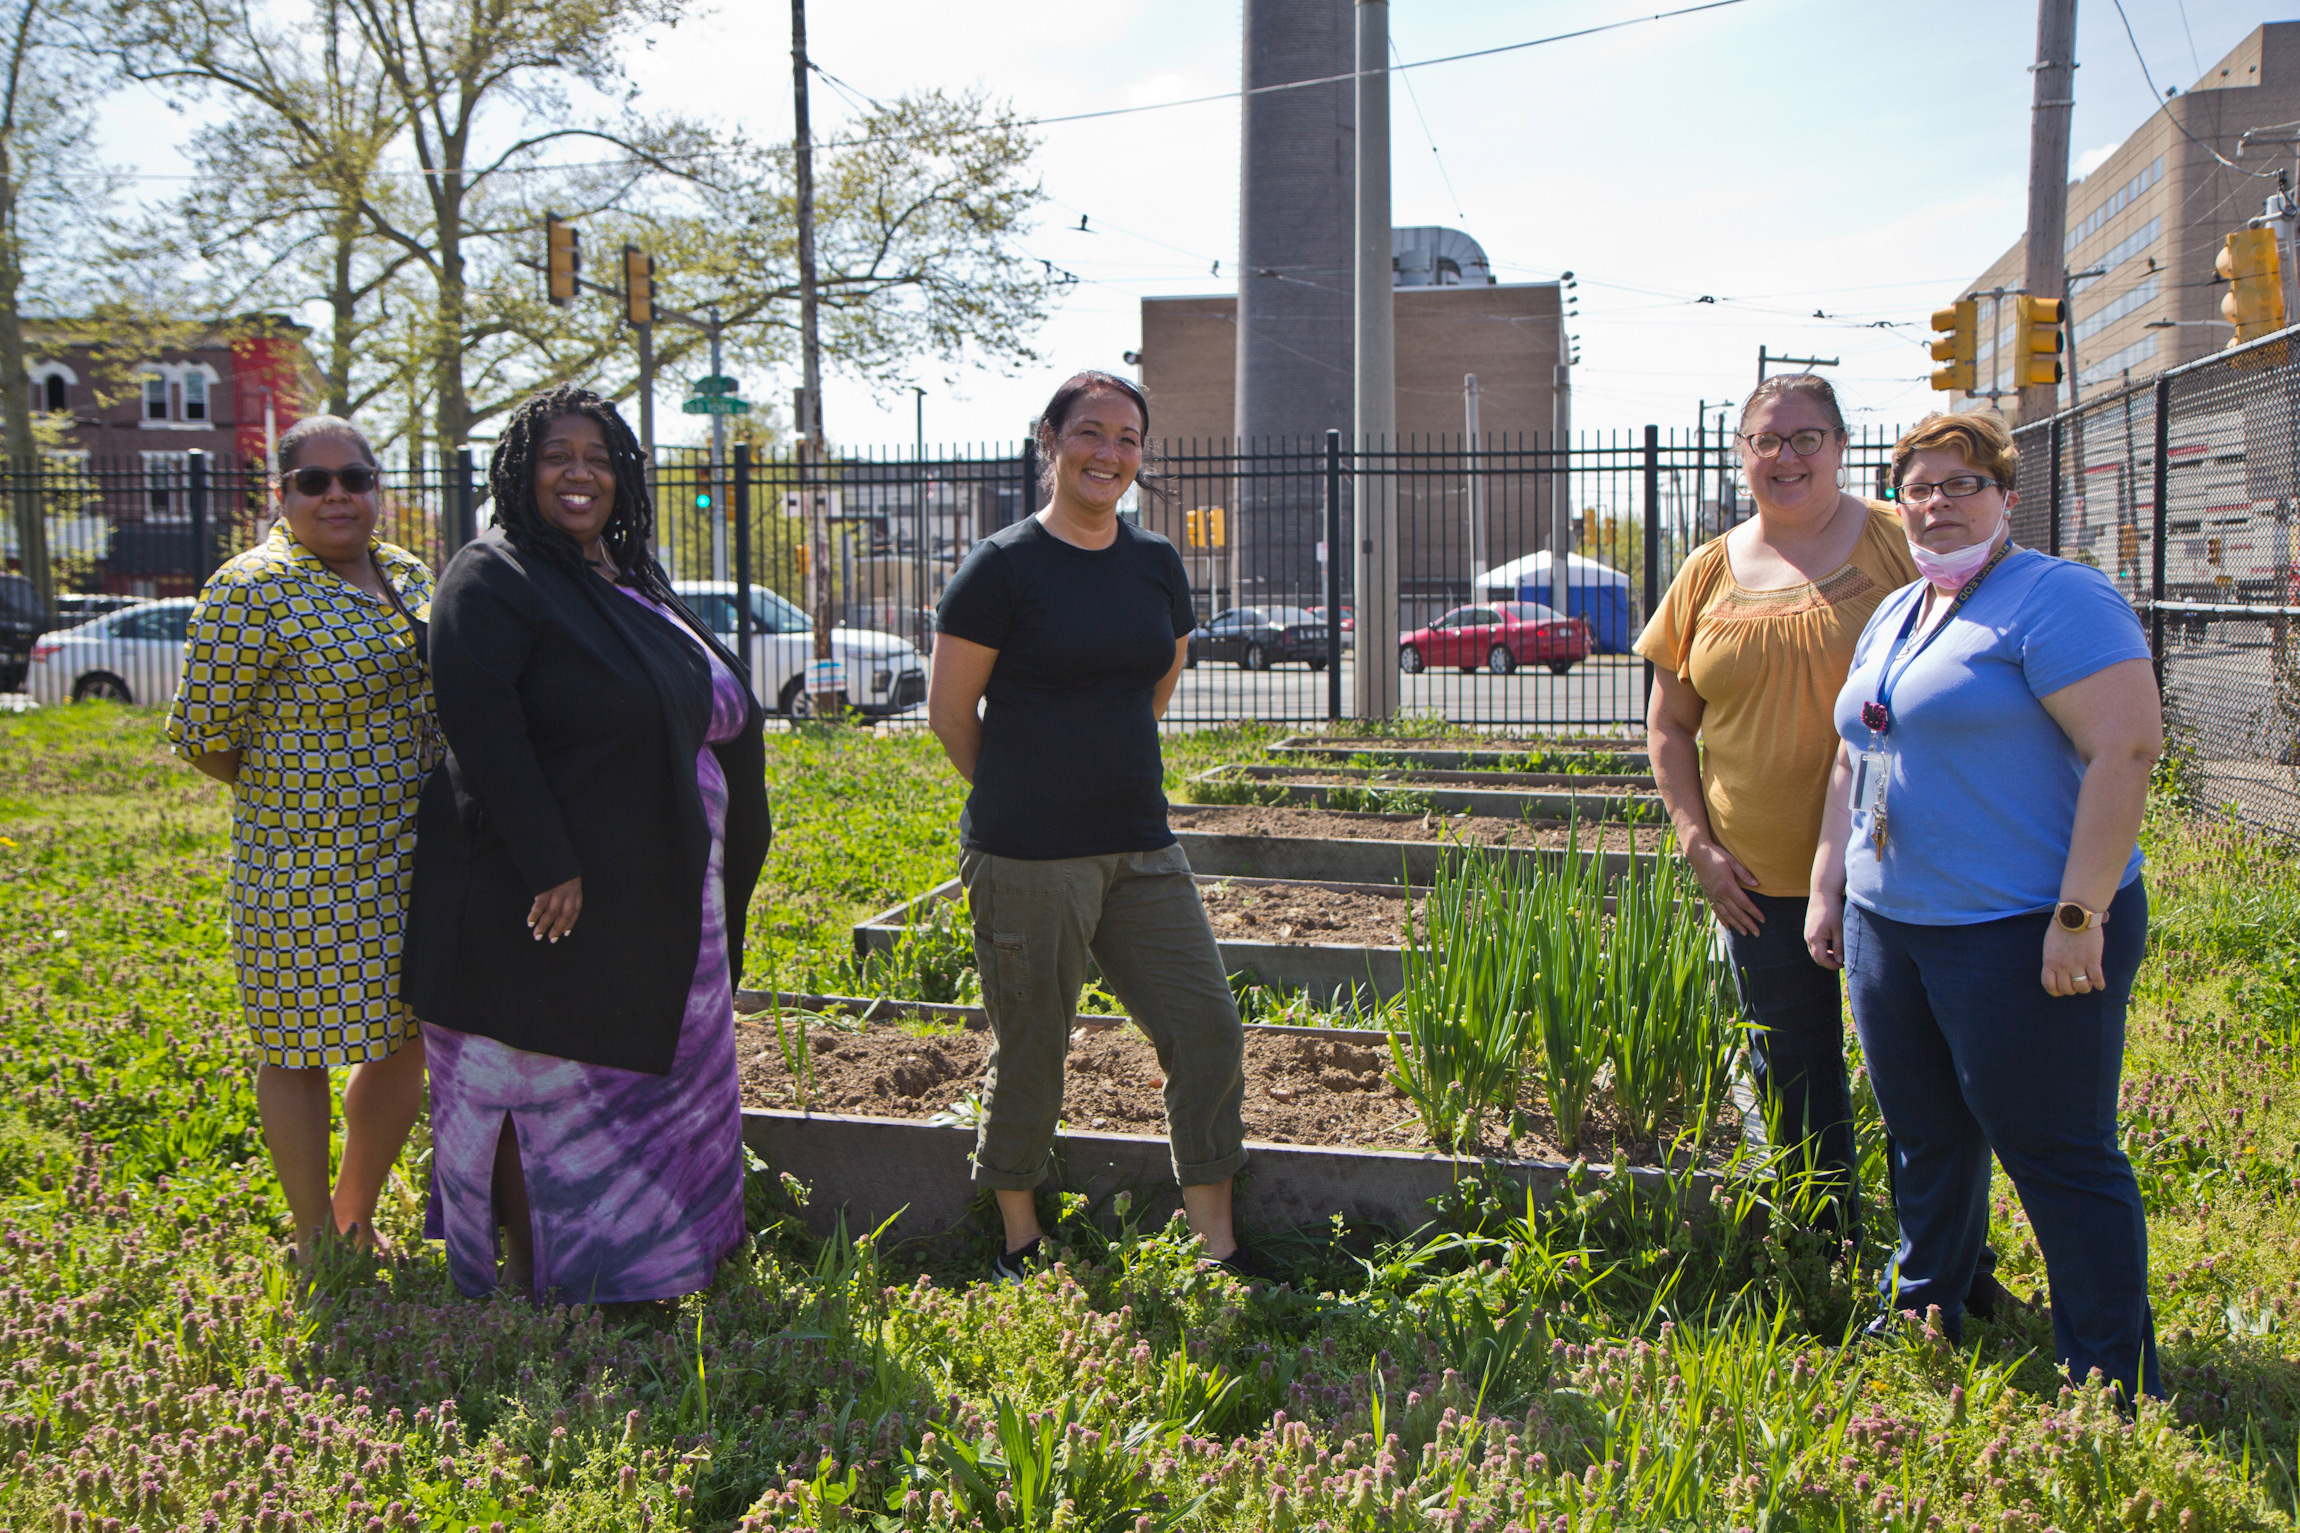 (From left) Assistant principal Yasim Evangelista, principal Aliya Catanch-Bradley, 2nd grade teacher Diane Balanovich, 2nd grade teacher Marianne Marino and Head Start teacher Lena Quiroz stand with the flower boxes they built at Mary McLeod Bethune Elementary. (Kimberly Paynter/WHYY)